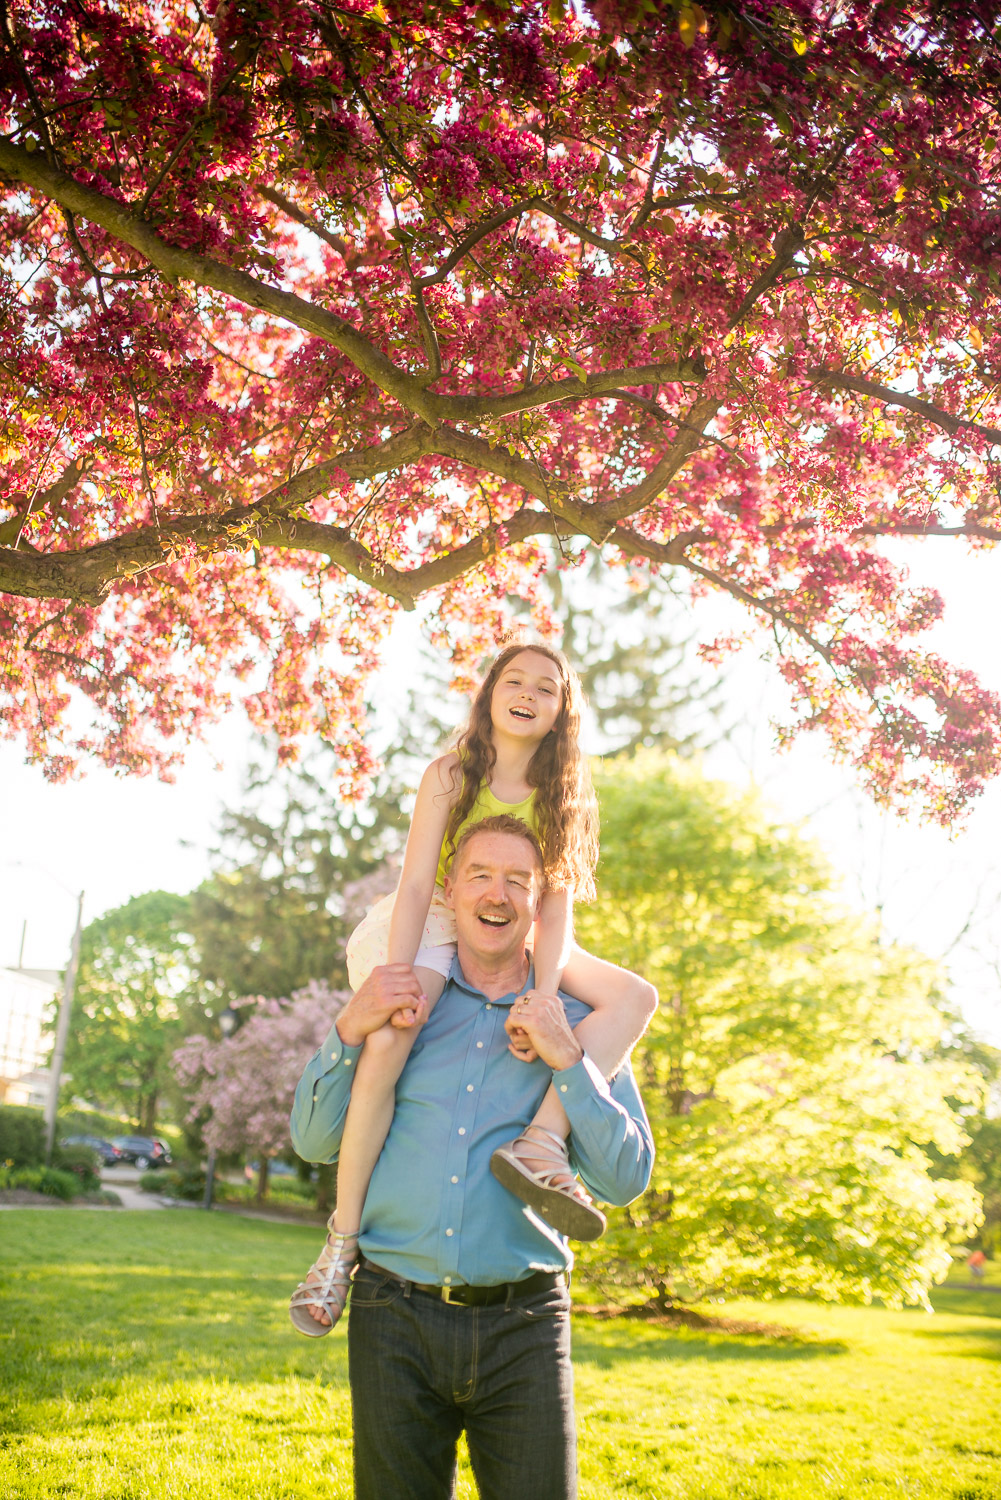 dad-daughter-family-photographer-blossoms.jpg